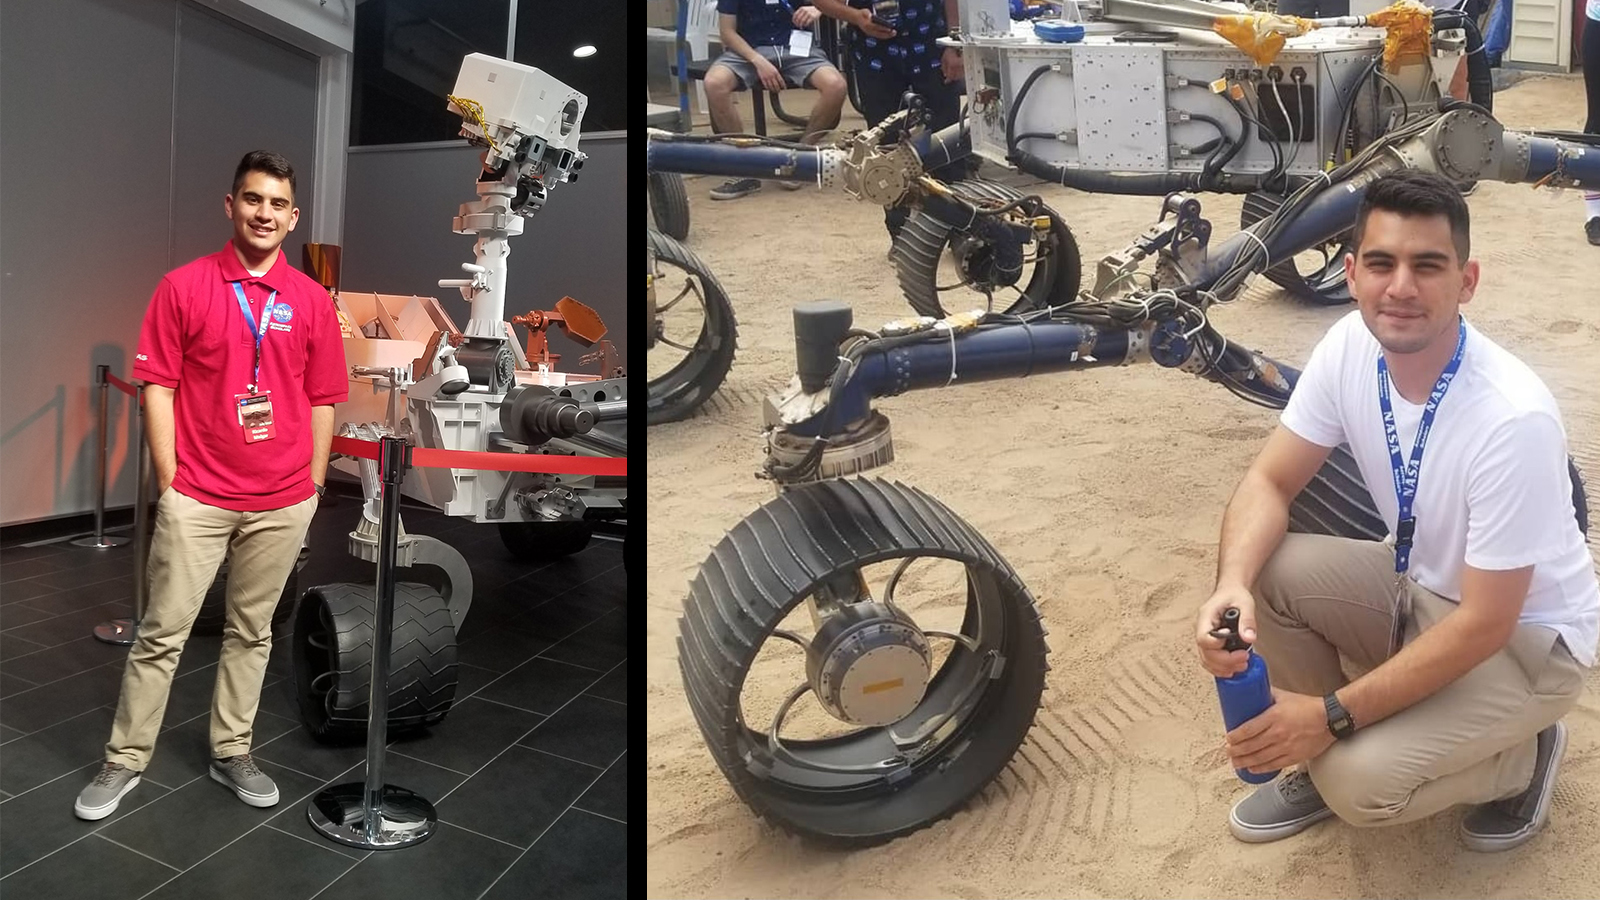 In the image on the left, Richardo Isai Melgar poses in front of a model of the Curiosity Mars rover at JPL. In the image on the right, he kneels in front of a model Mars rover in the Mars Yard at JPL.